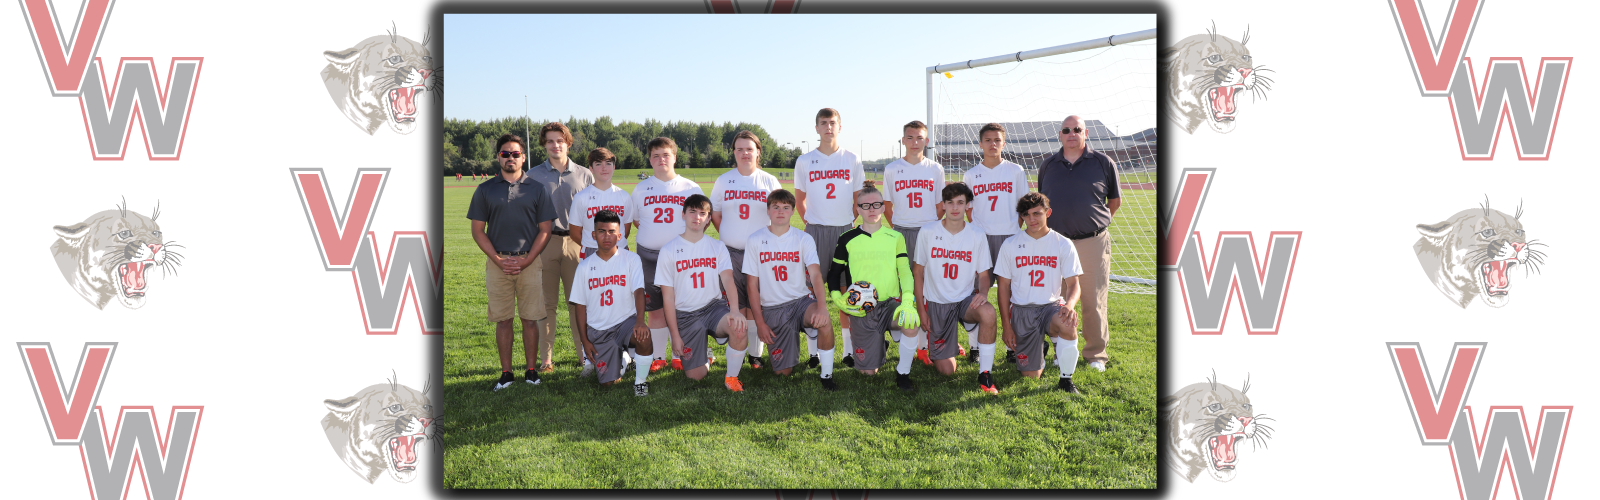 Boys soccer team picture